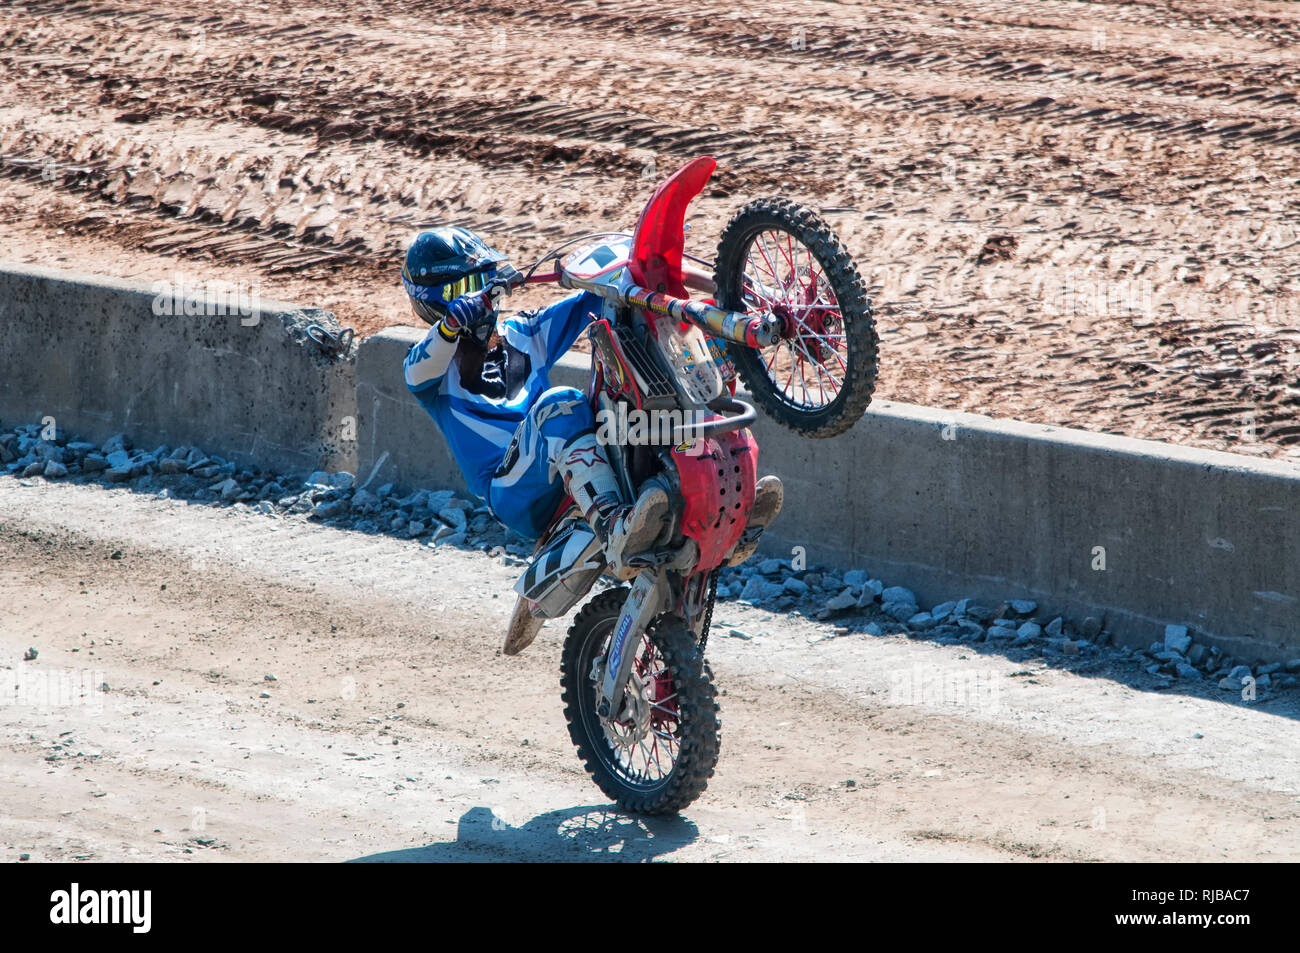 Goshen, Connecticut.  September 4, 2017.  A man wearing a racing gear and a helmut pulling a wheelie on a dirt bike at the Goshen Fair in Goshen Conne - Stock Image